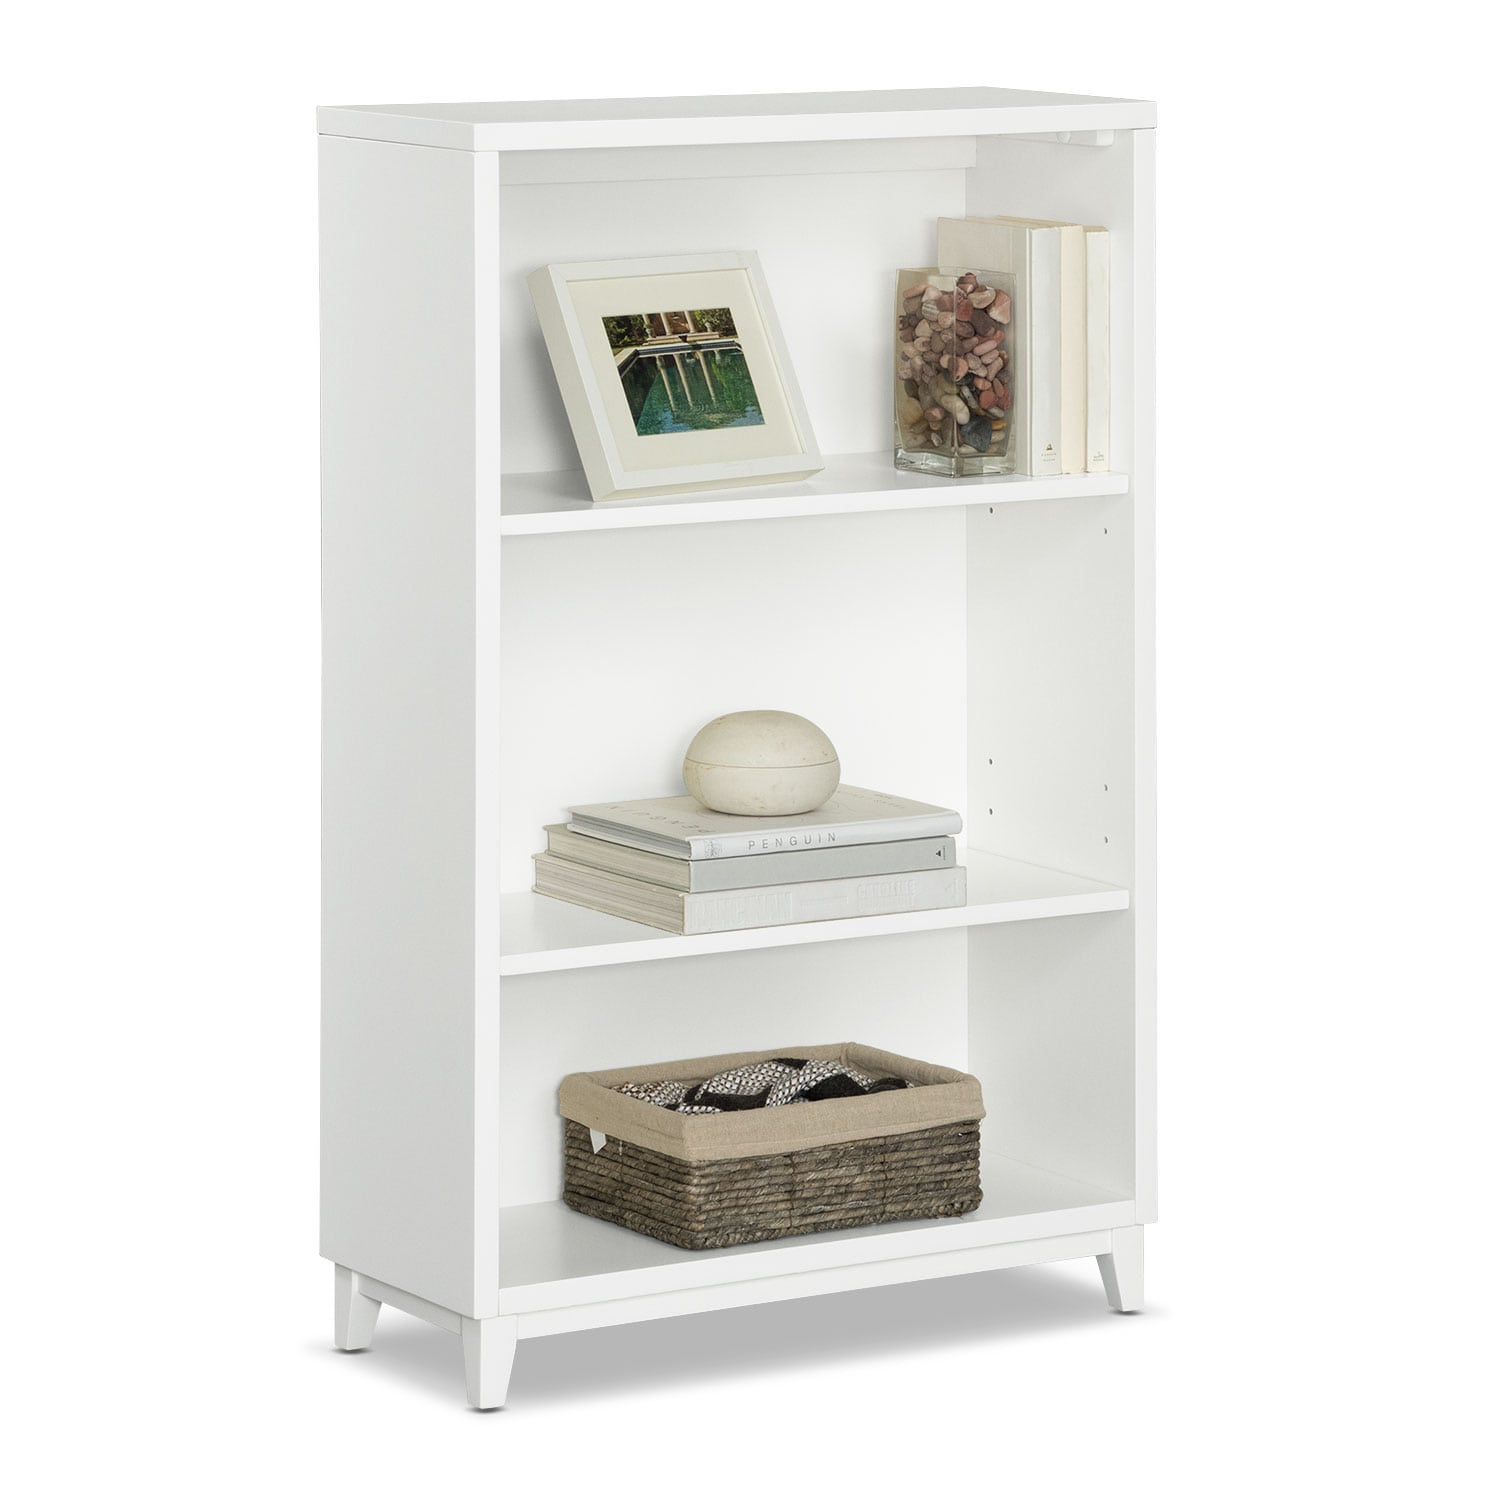 "Oslo 46"" Bookcase - White"